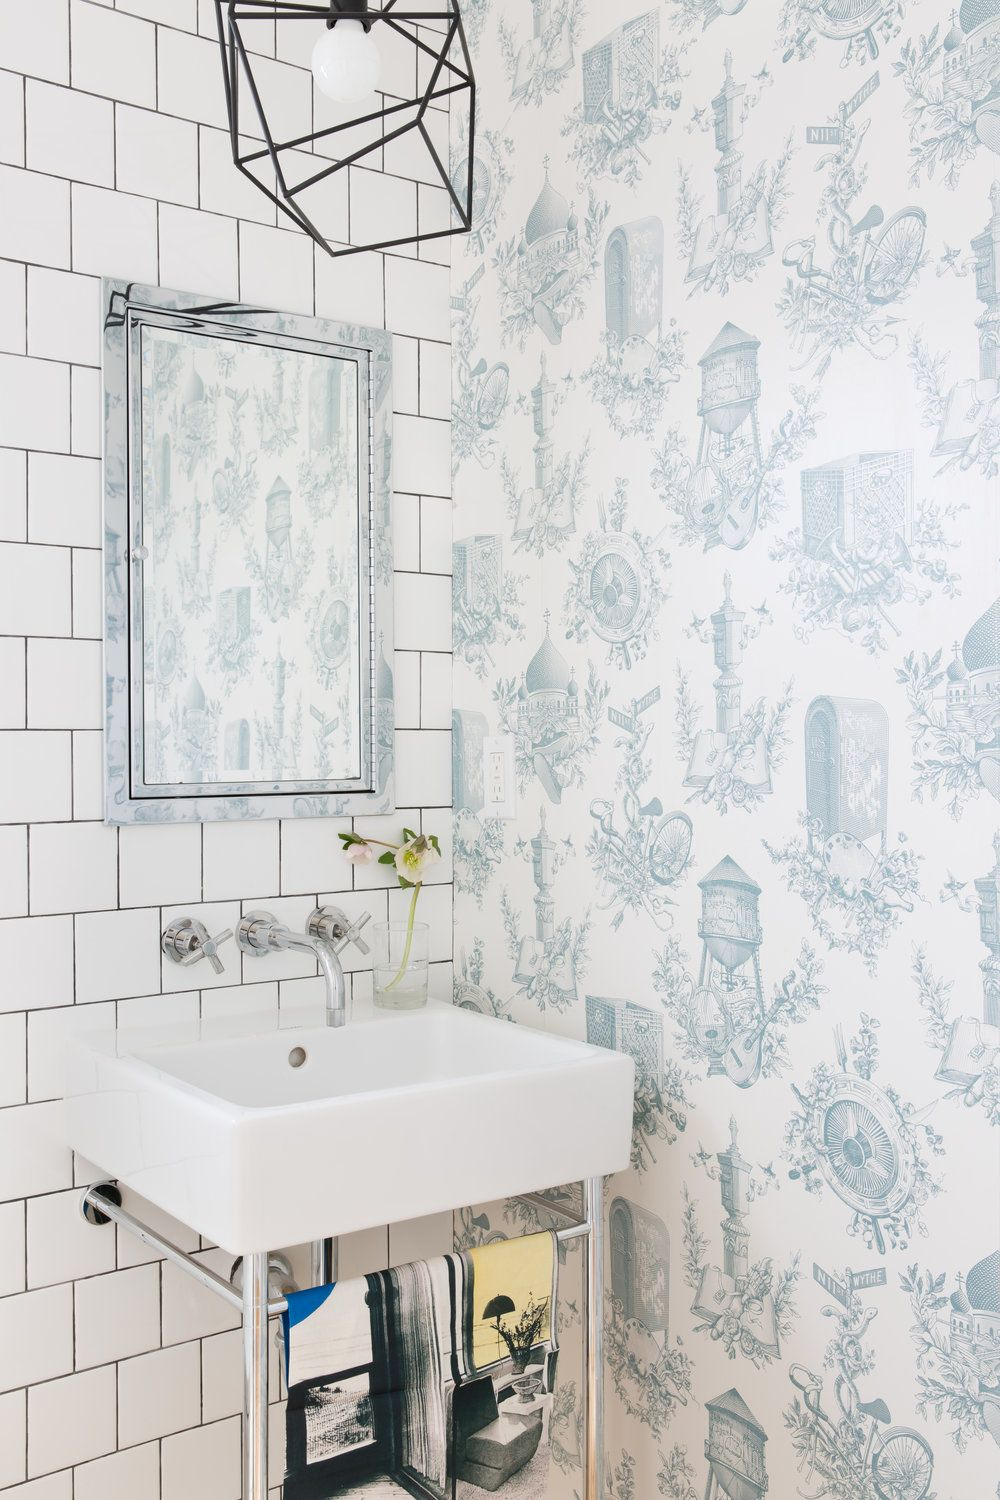 Bathroom Wallpaper Decorating Ideas Inspirational 28 Bathroom Wallpaper Ideas that Will Inspire You to Be Bold